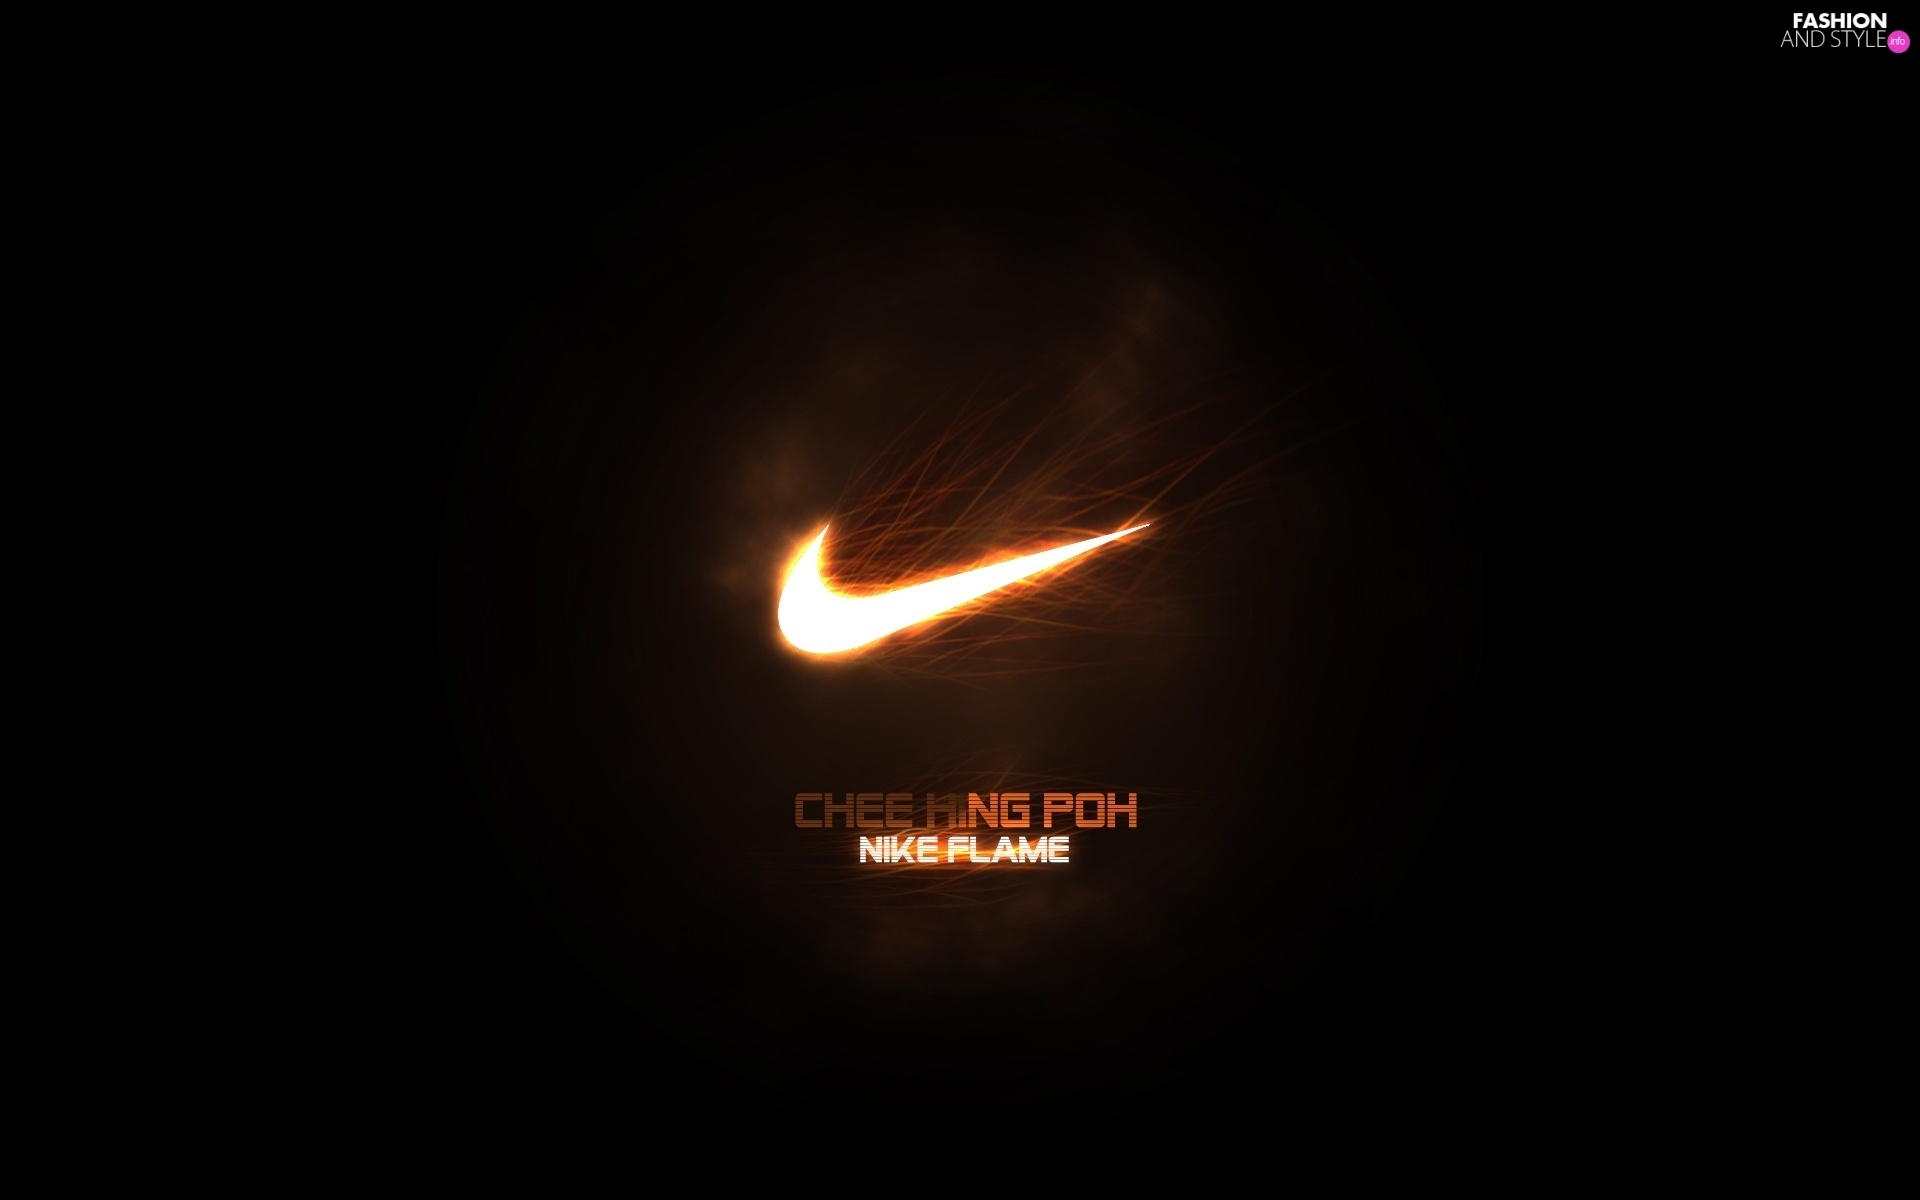 Nike Fire Logo Fashion And Style Wallpapers 1920x1200